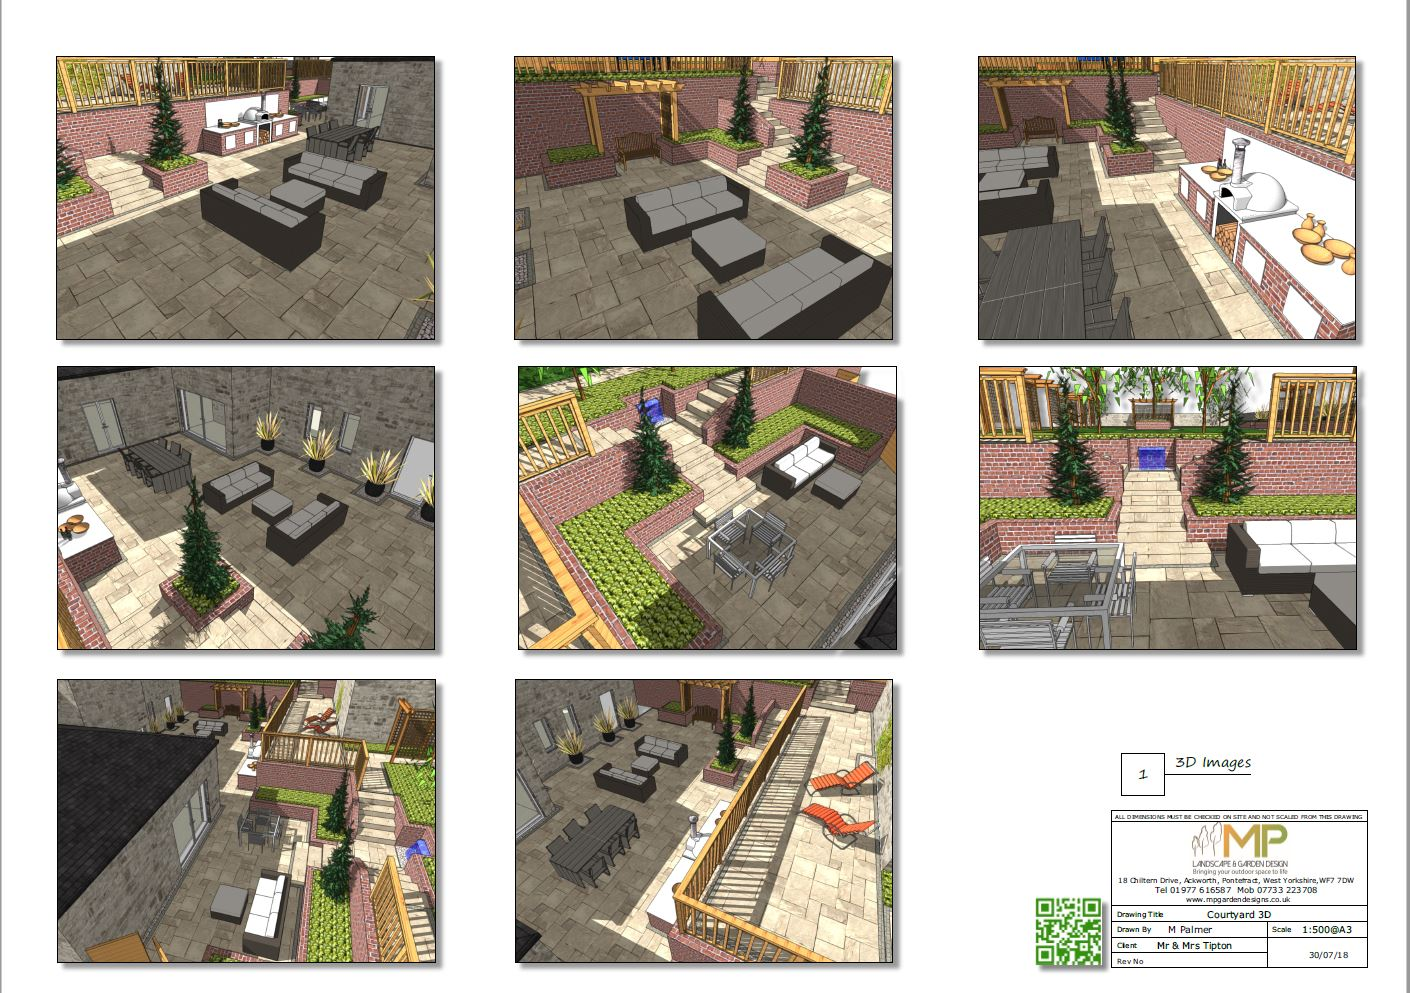 Courtyard layout plans 3D for a property in Pontefract.